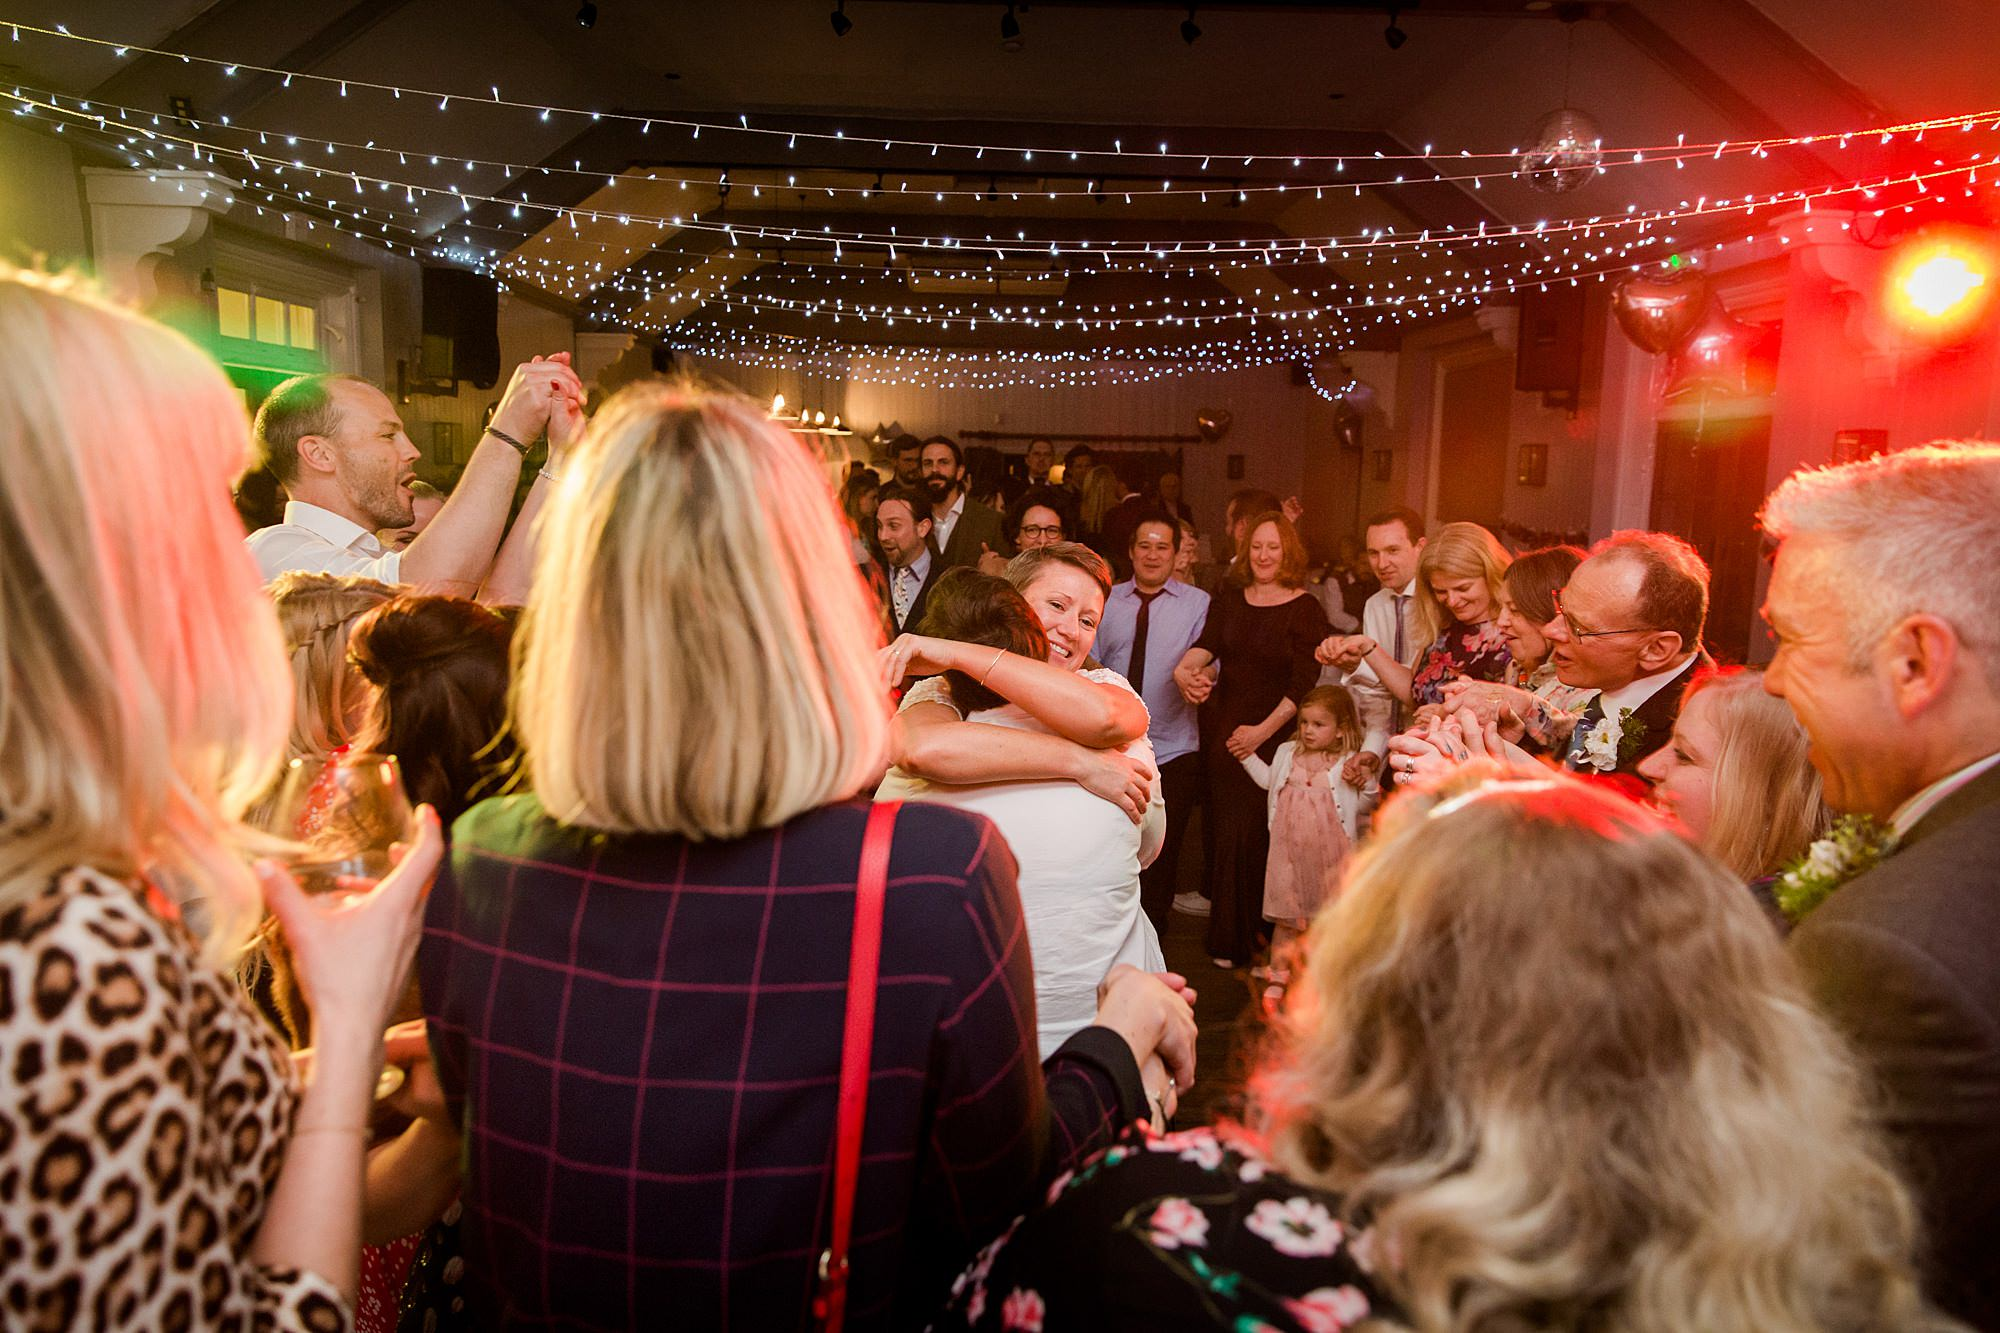 Twickenham wedding photography brides hug and dance together at turks head pub